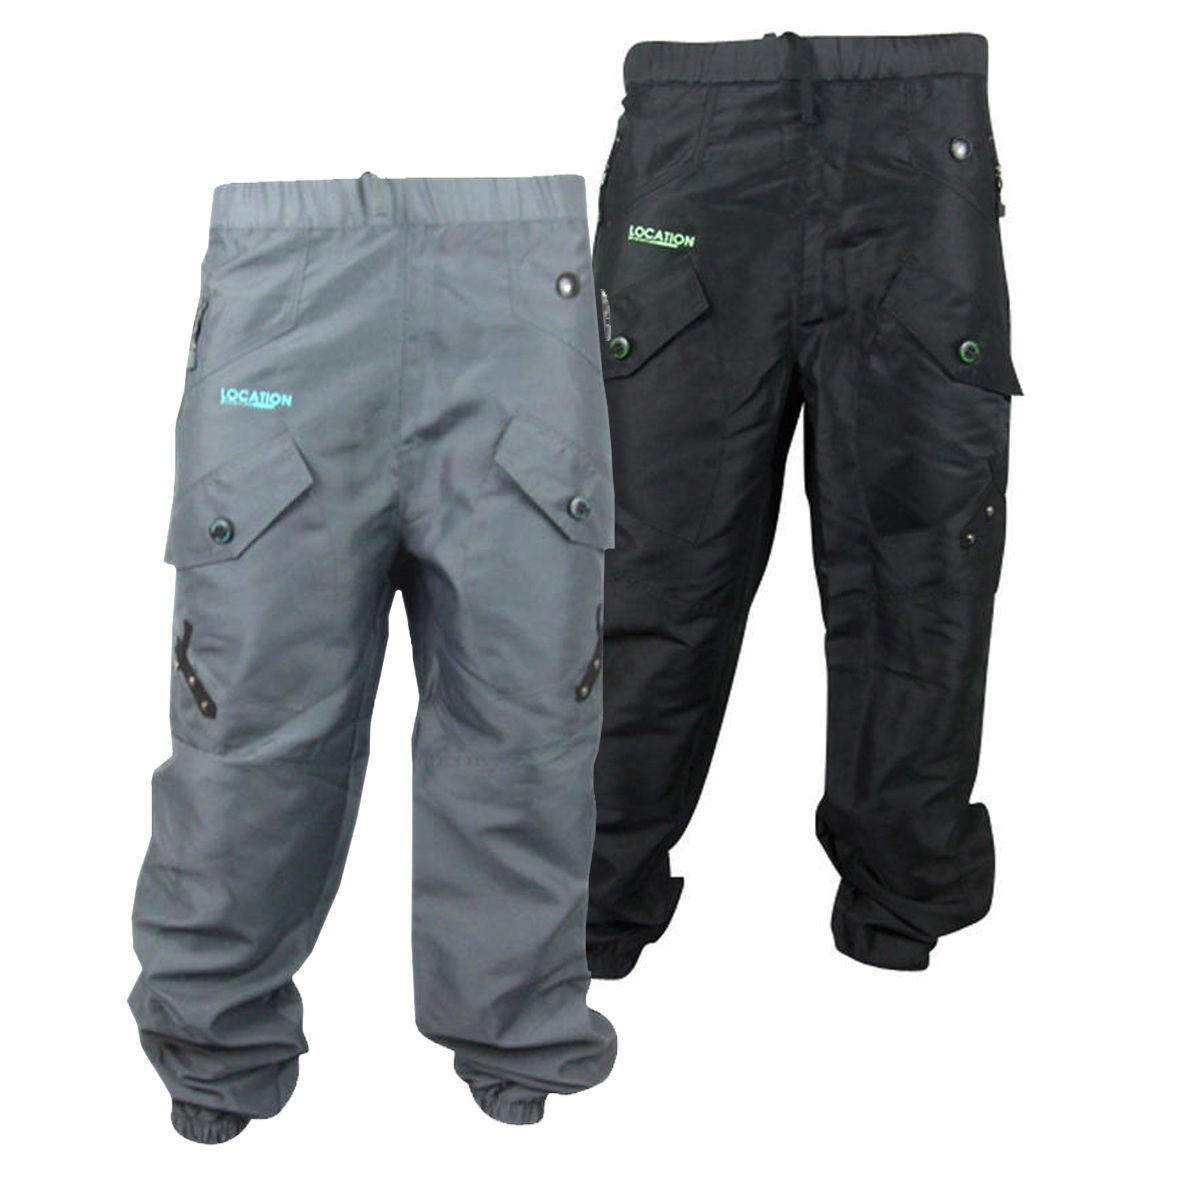 latest fashion cheap best selection of 2019 Details about Mens Location Cargo Style Tracksuit Track Pants Cuffed  Bottoms Pant Size S-XXL